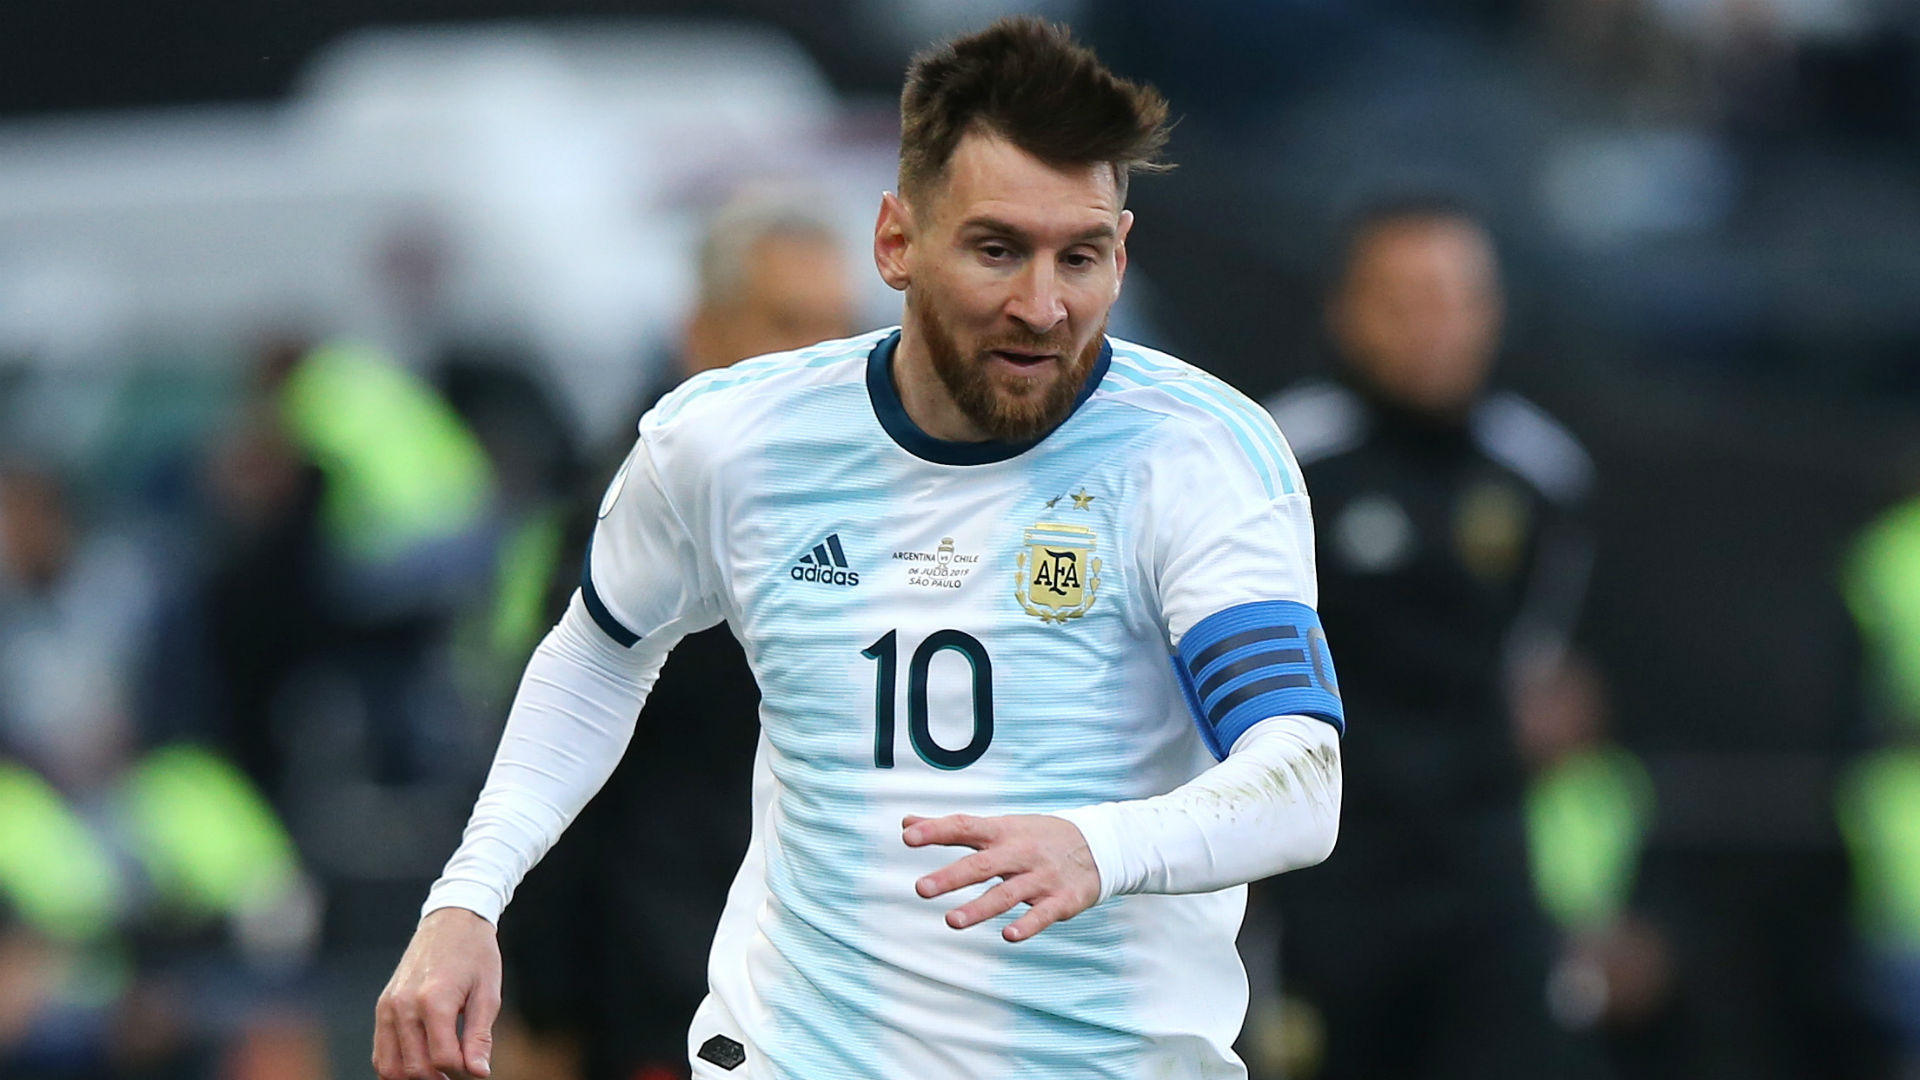 Messi is Argentina's 'leader and protector', says Tagliafico